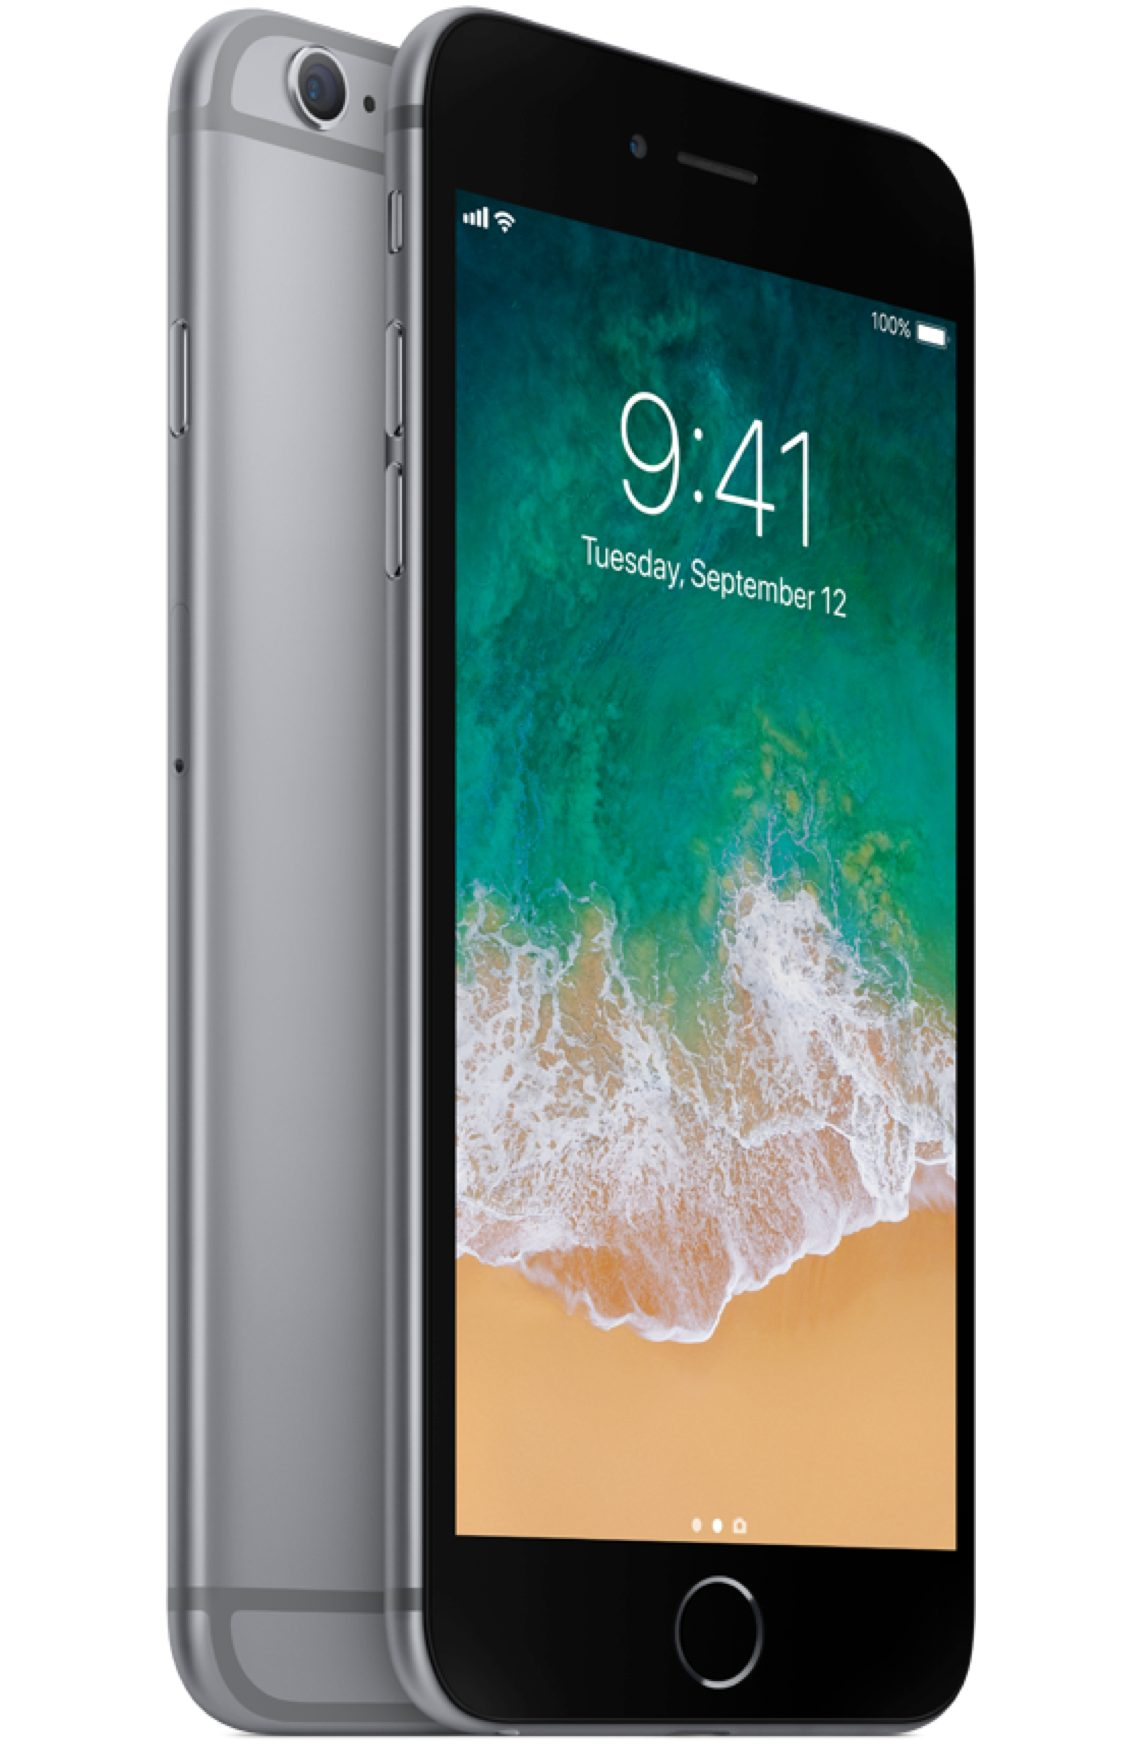 Apple Iphone 6s Plus Features And Reviews Boost Mobile